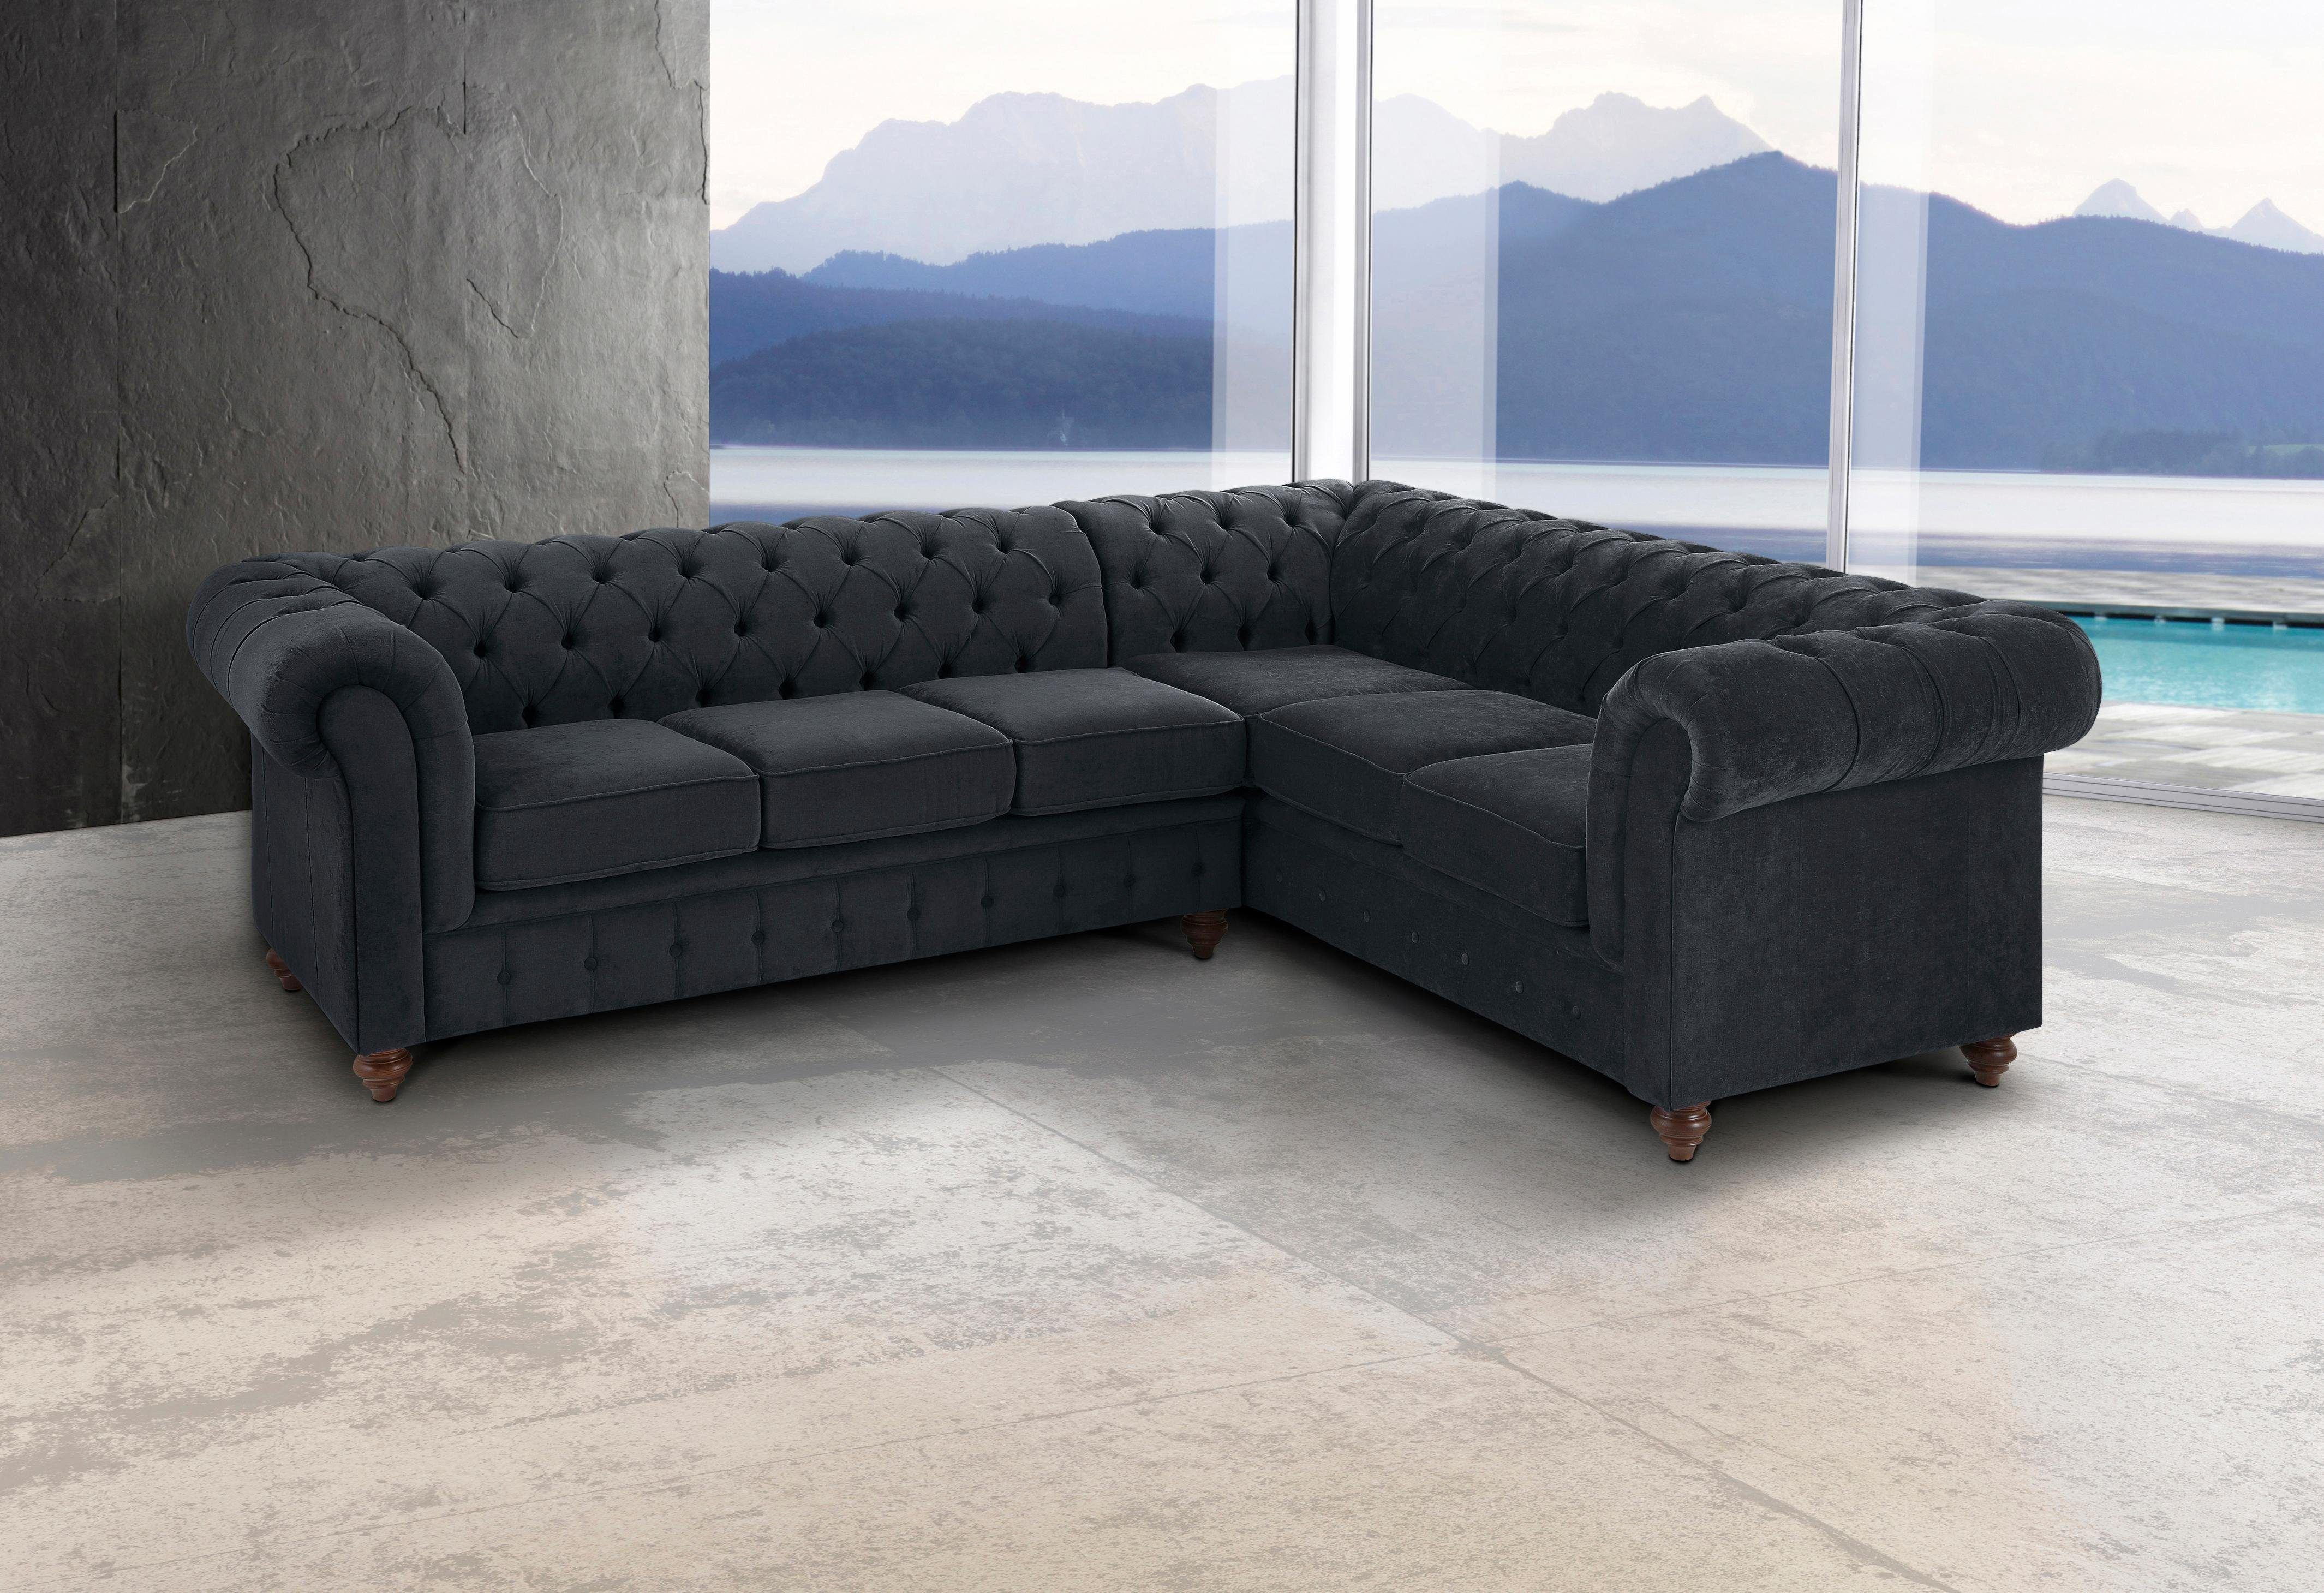 Home affaire Ecksofa Chesterfield grau Langer Schenkel links FSC